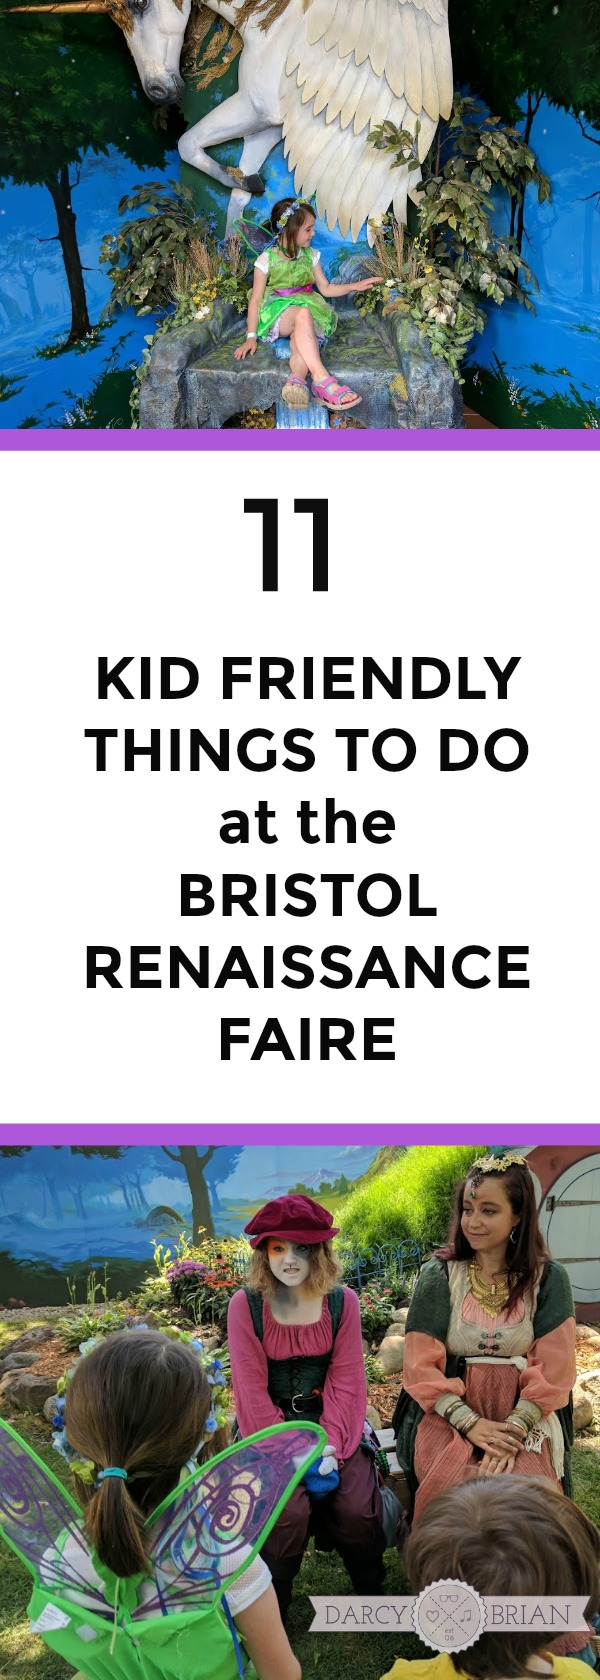 Wondering if the Bristol Renaissance Faire is family friendly? Check out these Kid-Friendly Things To Do at the Bristol Renaissance Faire in Kenosha, Wisconsin. Great family travel destination during the summer!